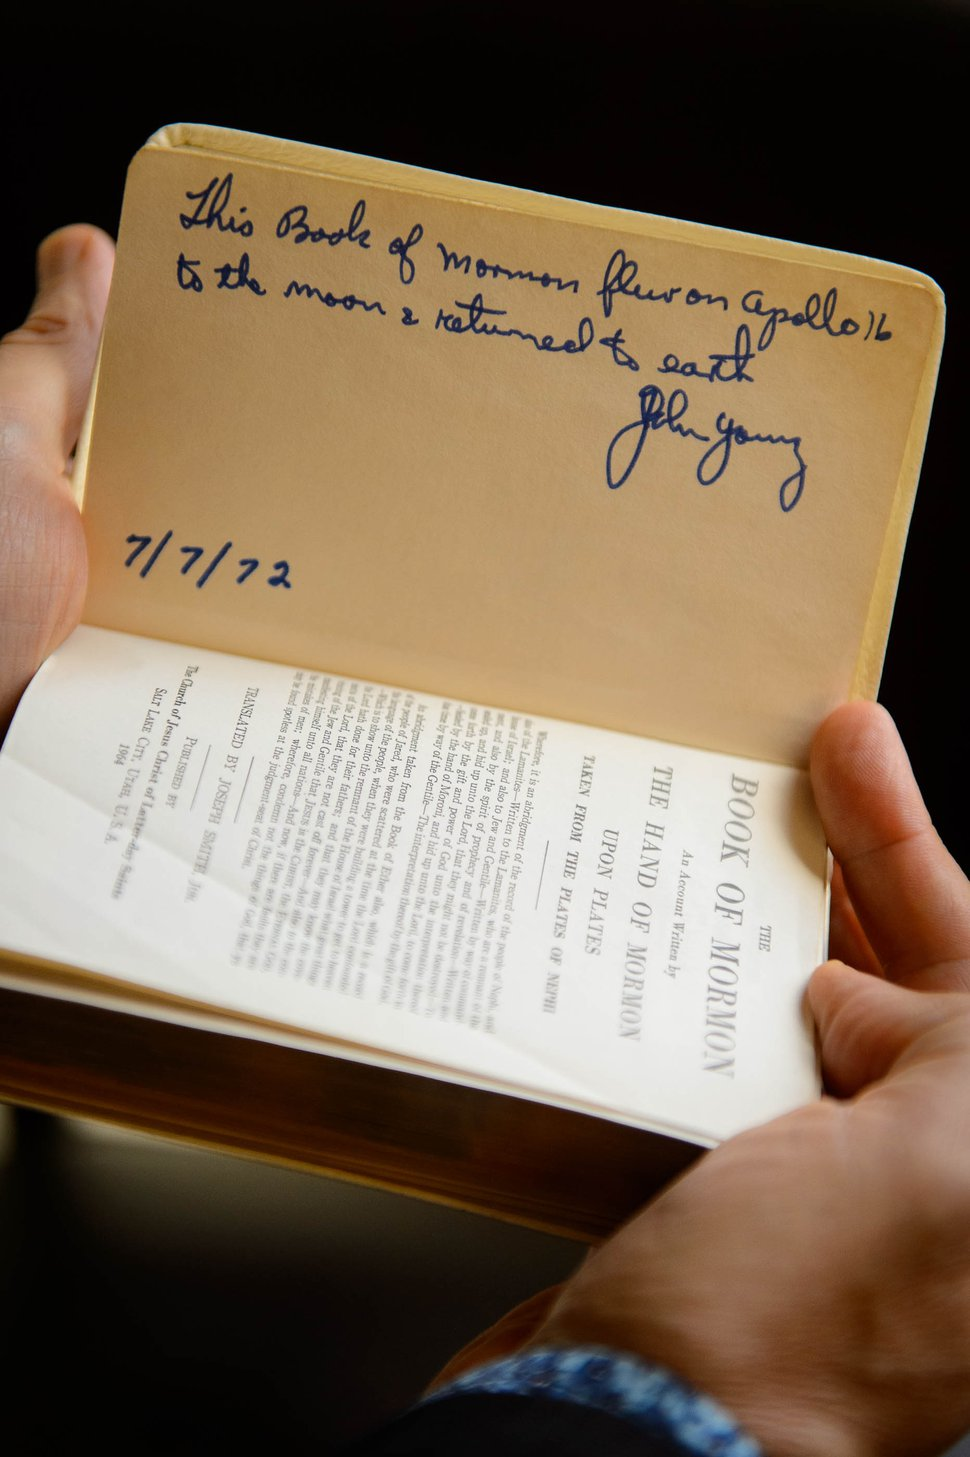 (Trent Nelson | The Salt Lake Tribune) Astronaut John Young's signature on a Book of Mormon that went to the moon in 1972. Photographed in Salt Lake City on Wednesday Oct. 2, 2019.